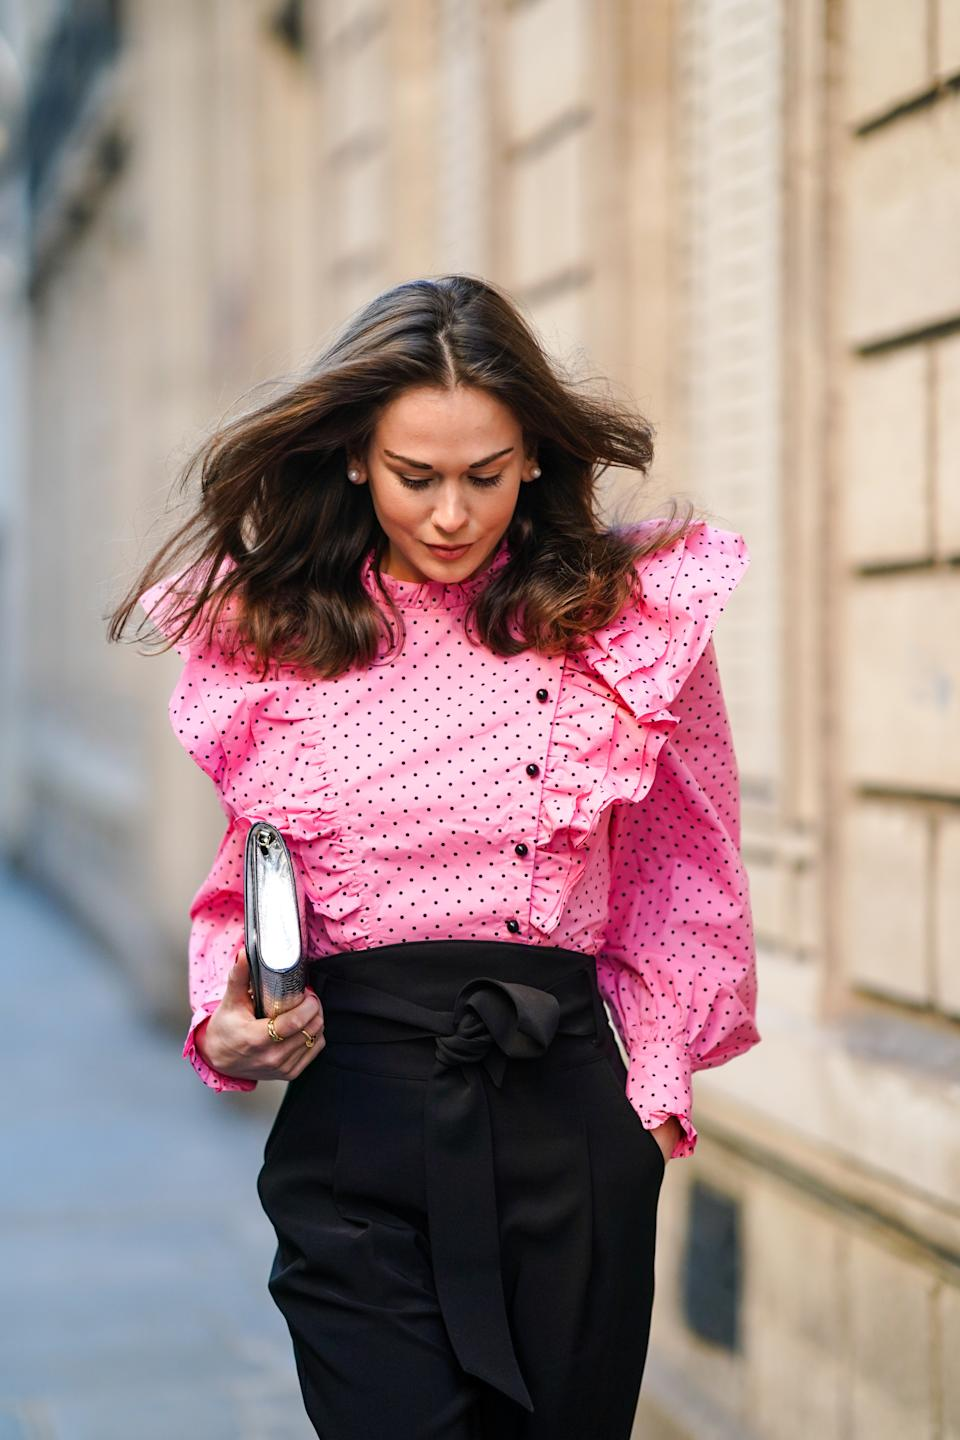 PARIS, FRANCE - NOVEMBER 28: Therese Hellström wears a full Custommade look made of a neon pink ruffled oversized top with puff sleeves and printed polka dots, black pants, a silver shiny crocodile pattern Jimmy Choo bag, on November 28, 2020 in Paris, France. (Photo by Edward Berthelot/Getty Images)